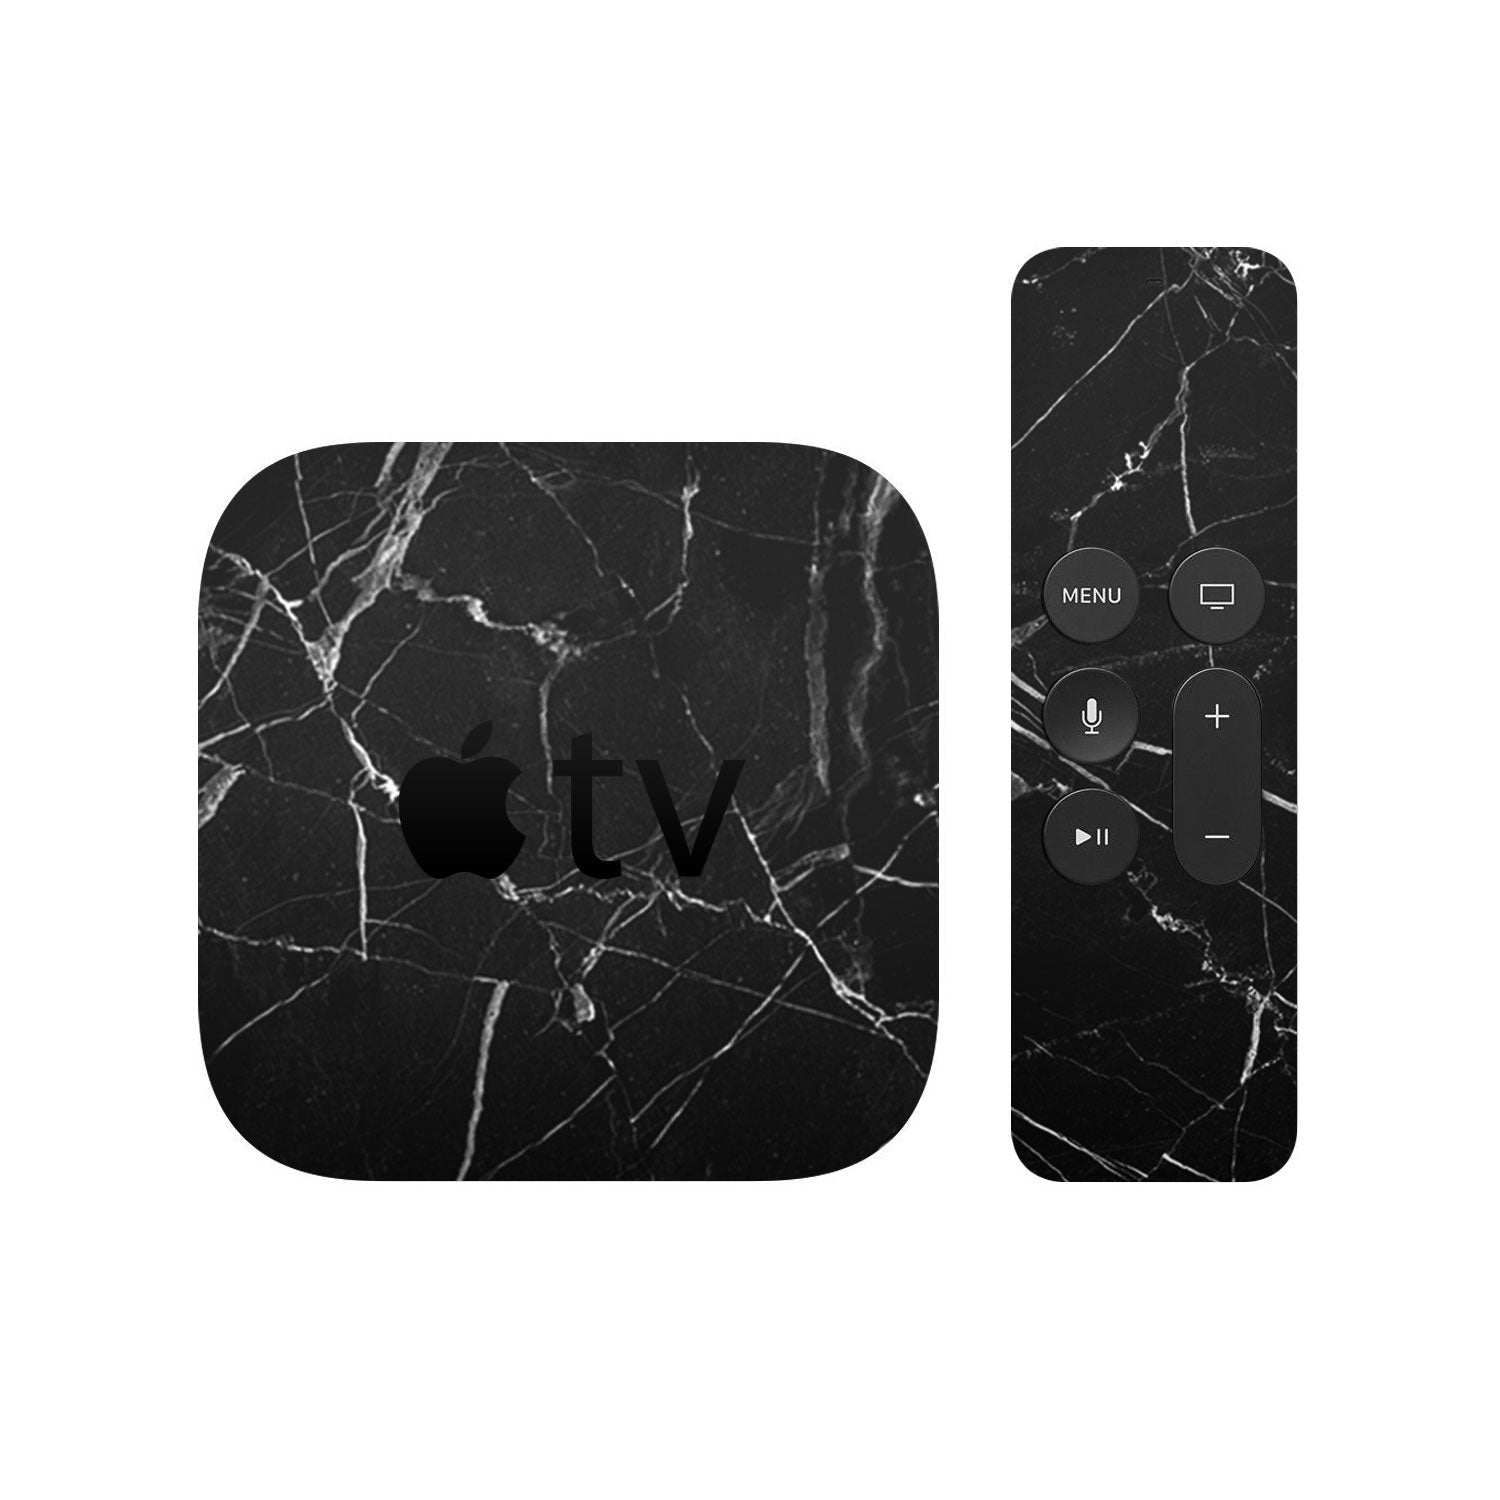 Apple TV decals